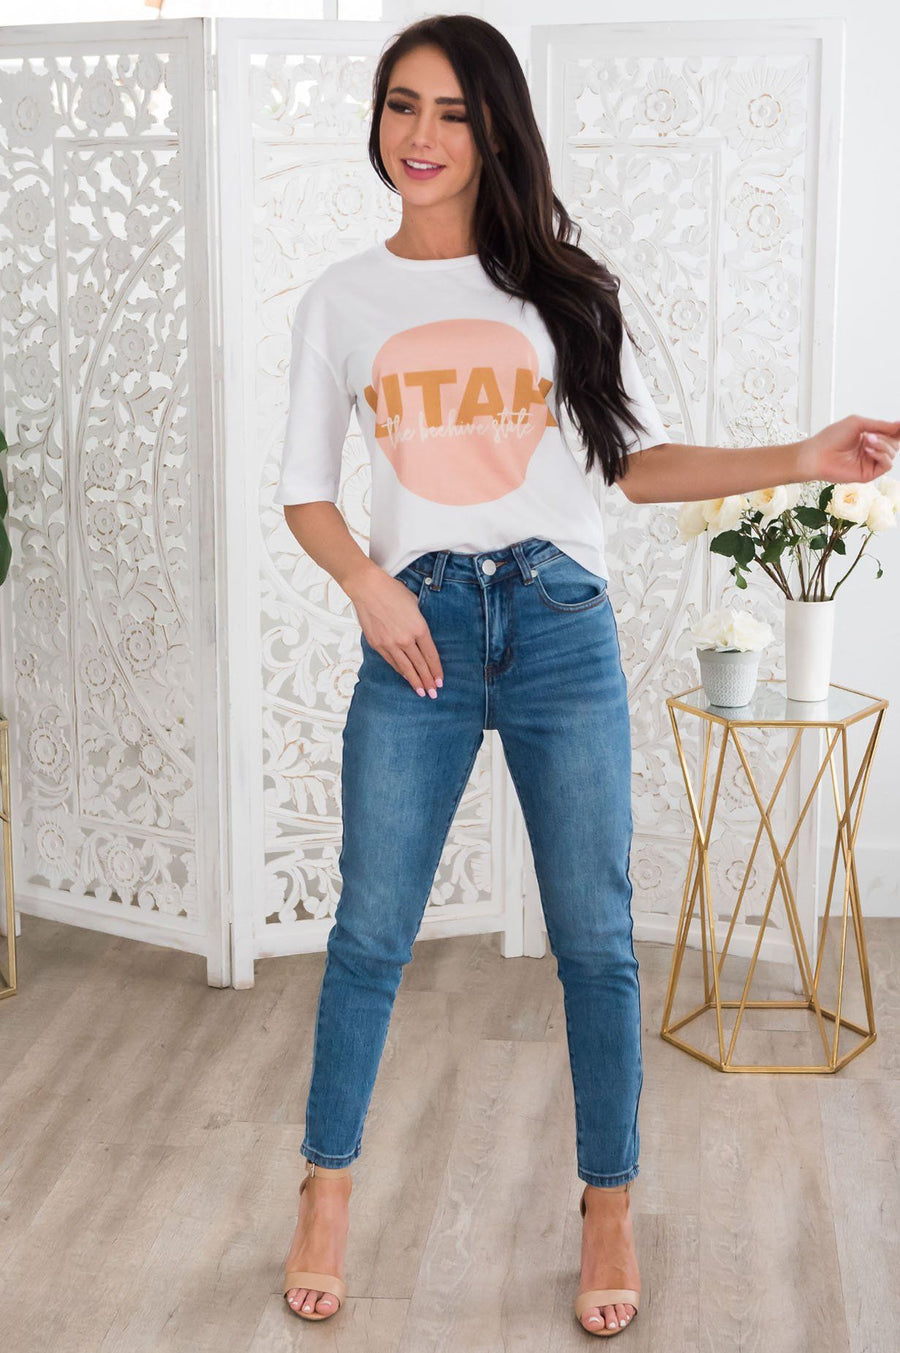 Utah Graphic Modest Tee